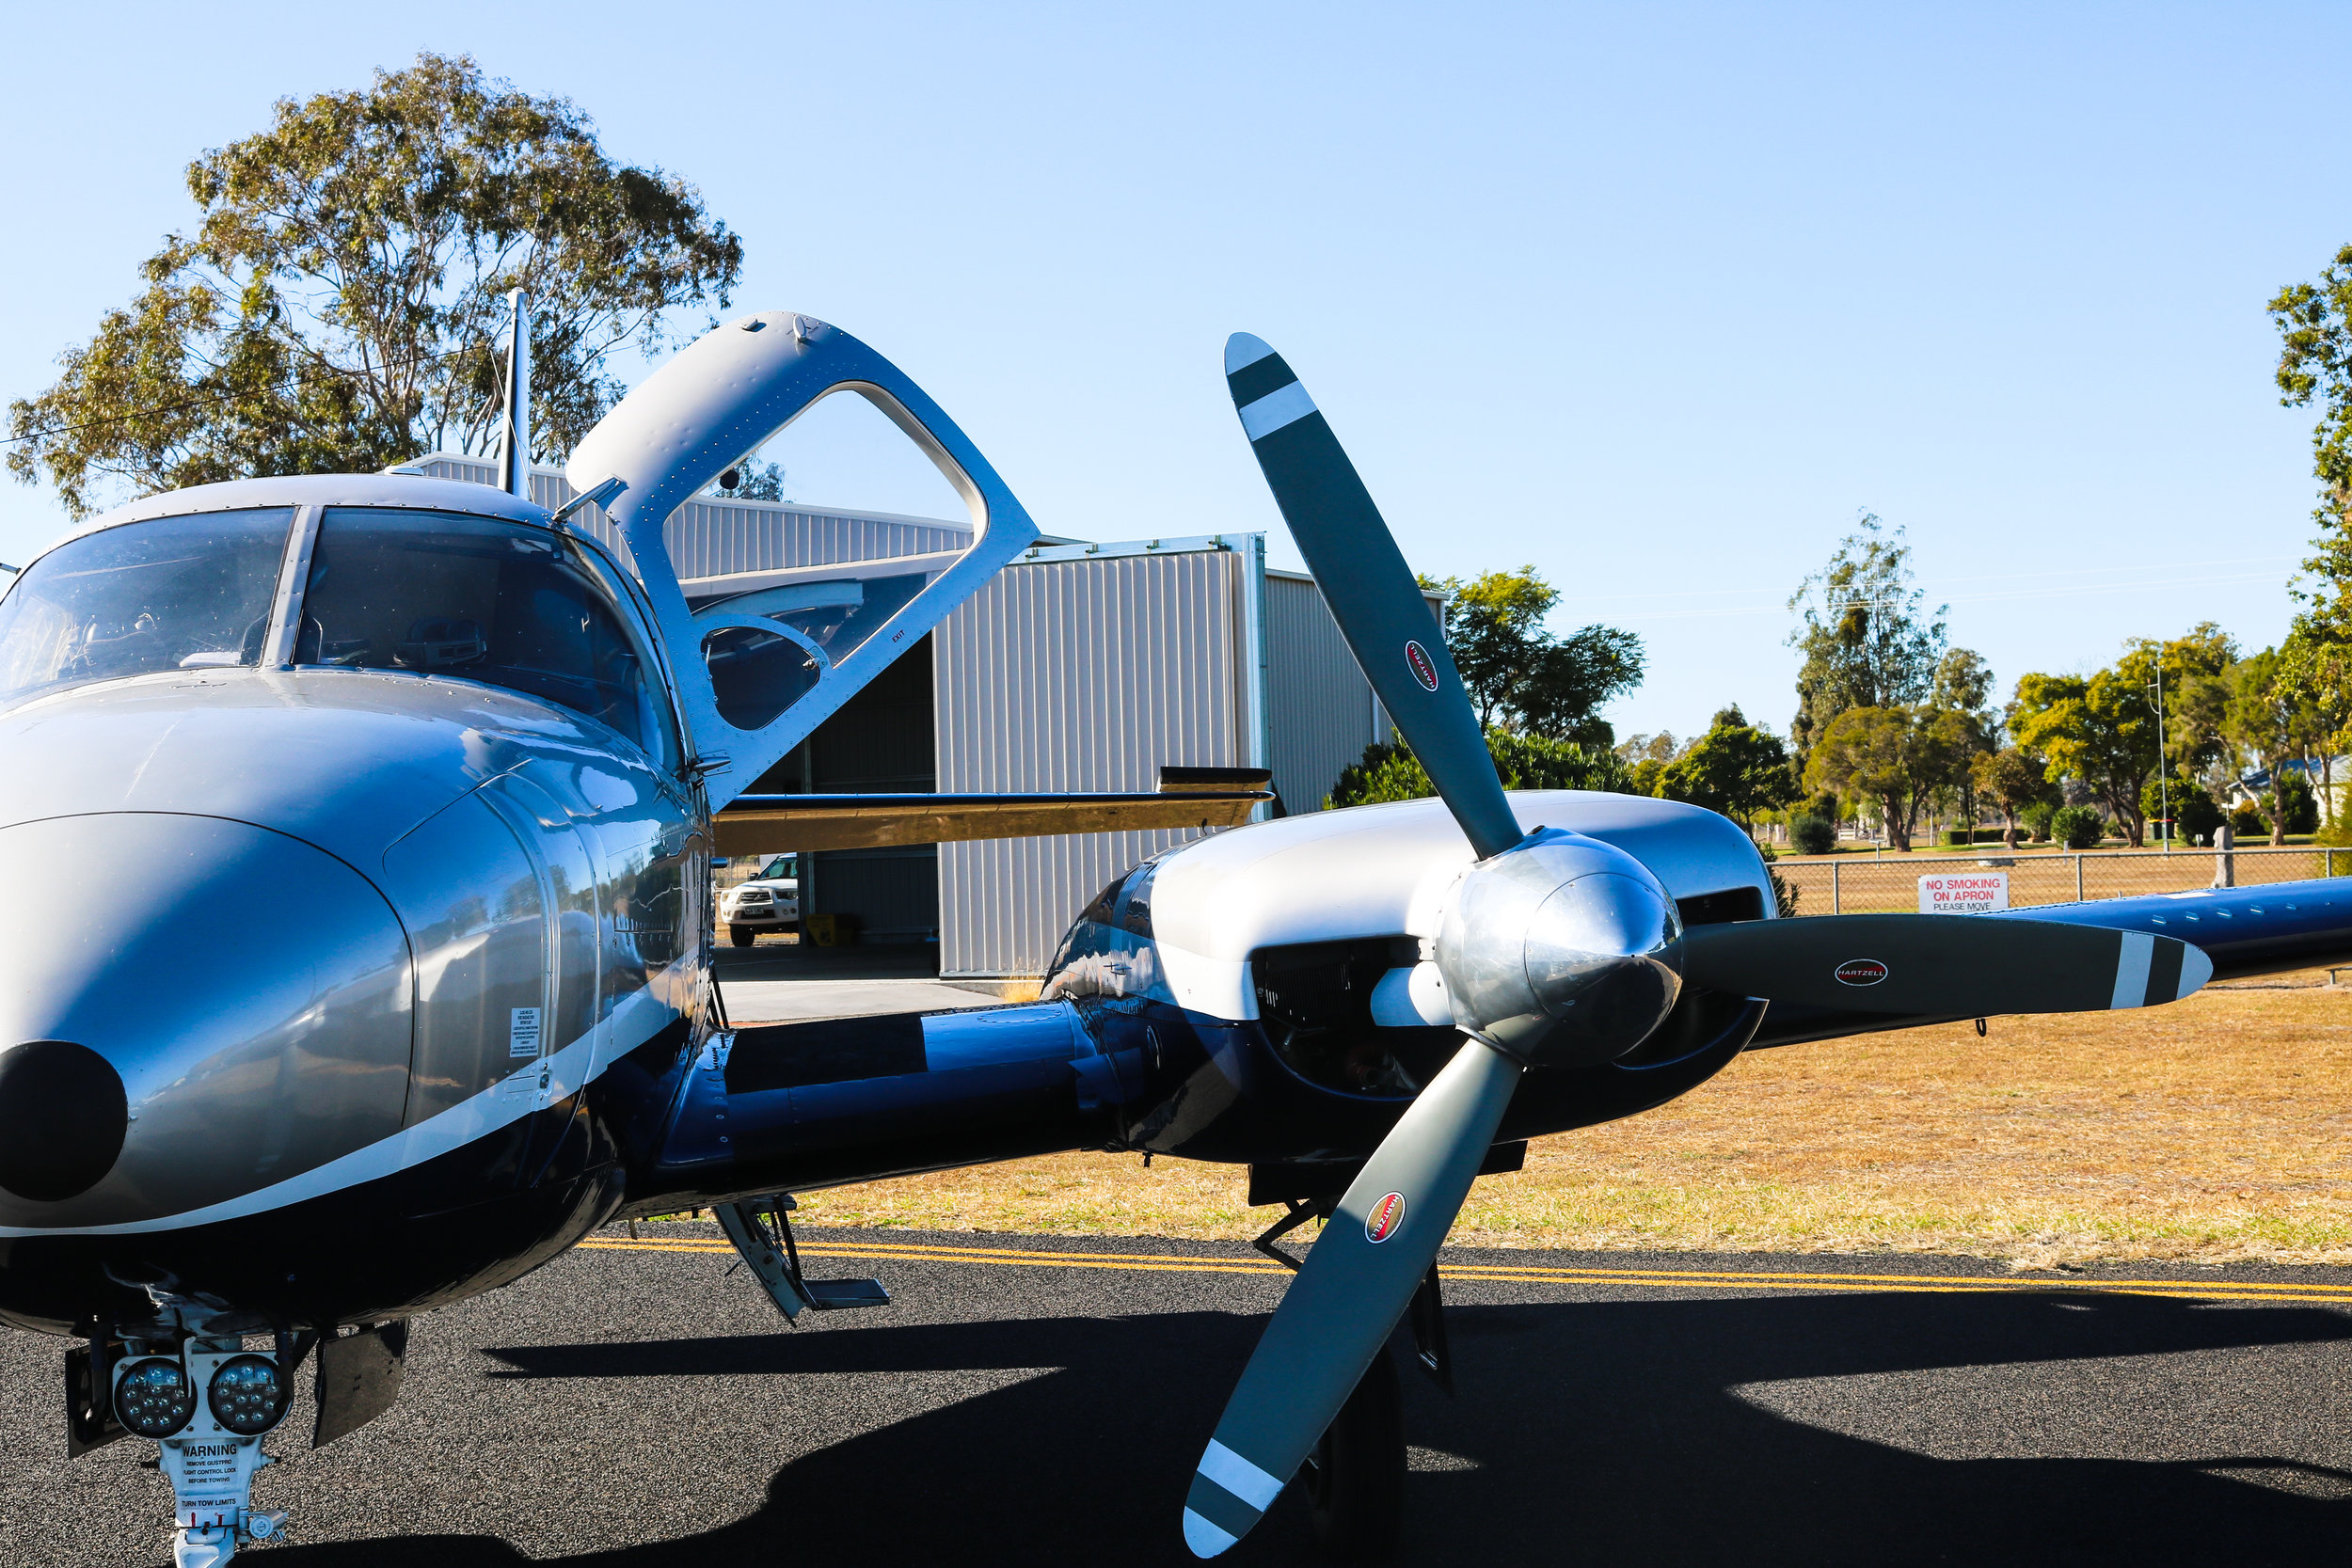 - Air Bush Charter operate a range of single and multi-engine aircraft from several bases in Queensland and New South Wales. We can carry out on demand charter in all weather to most destinations.